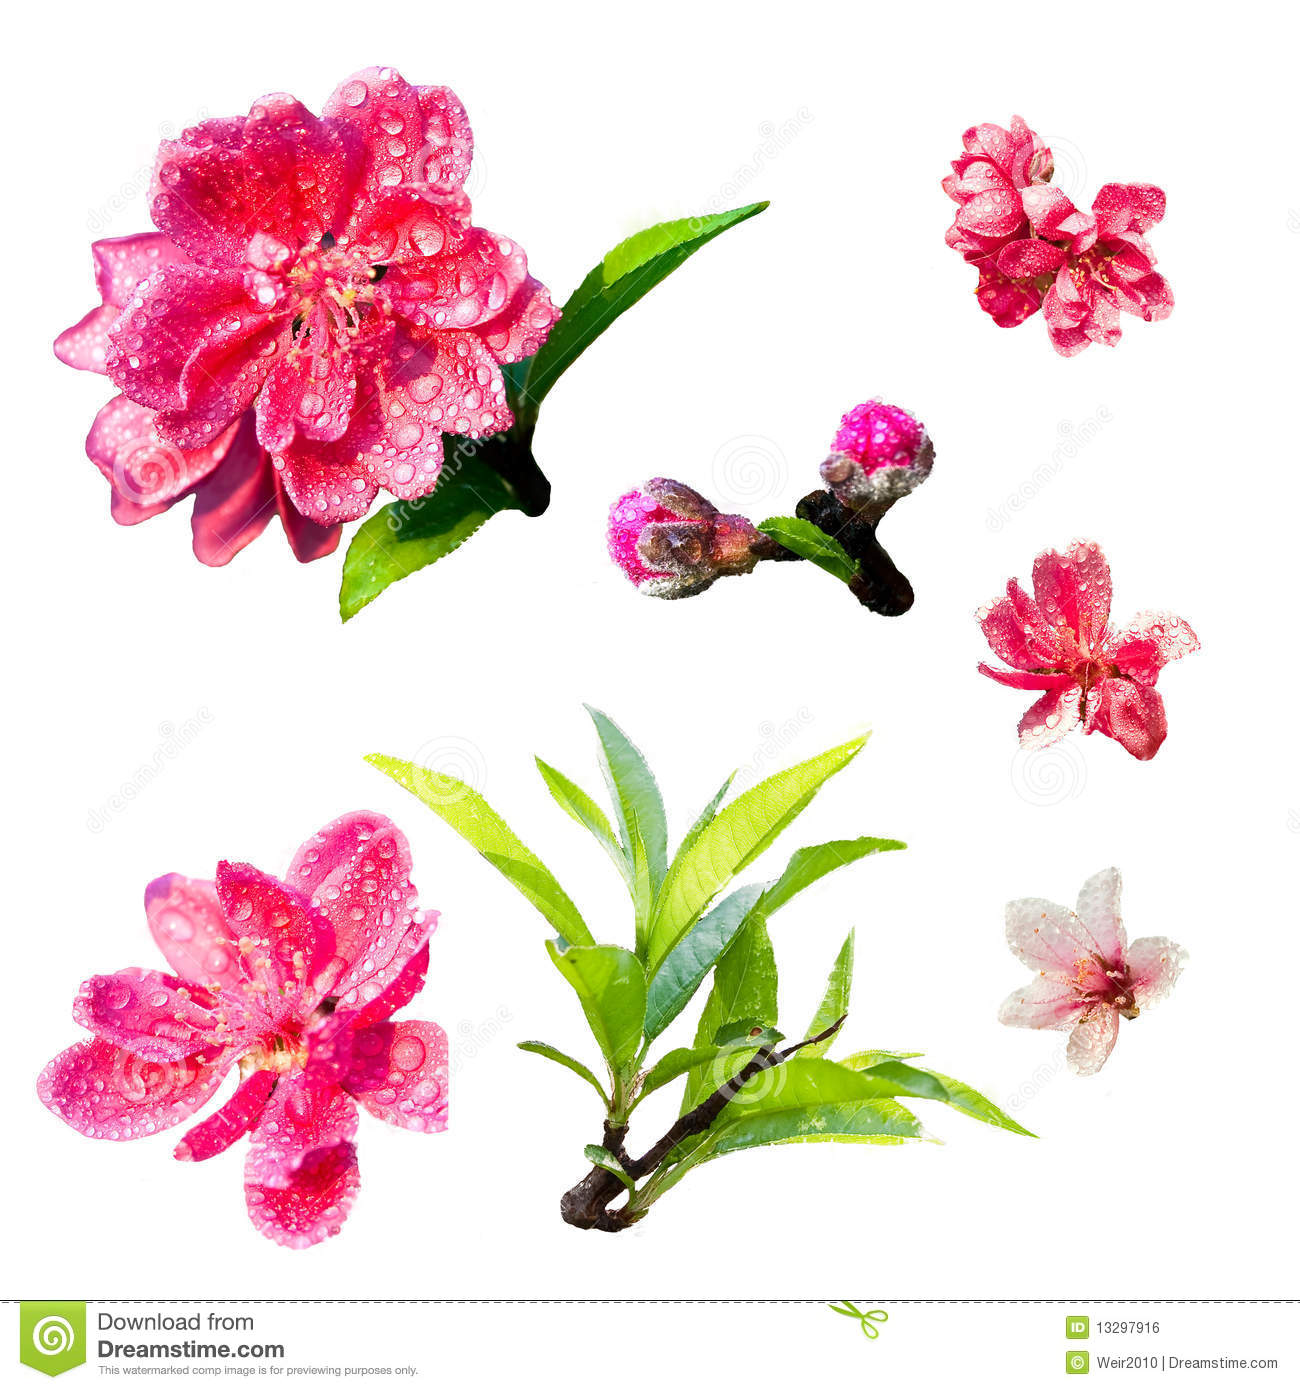 Peach blossom with white background